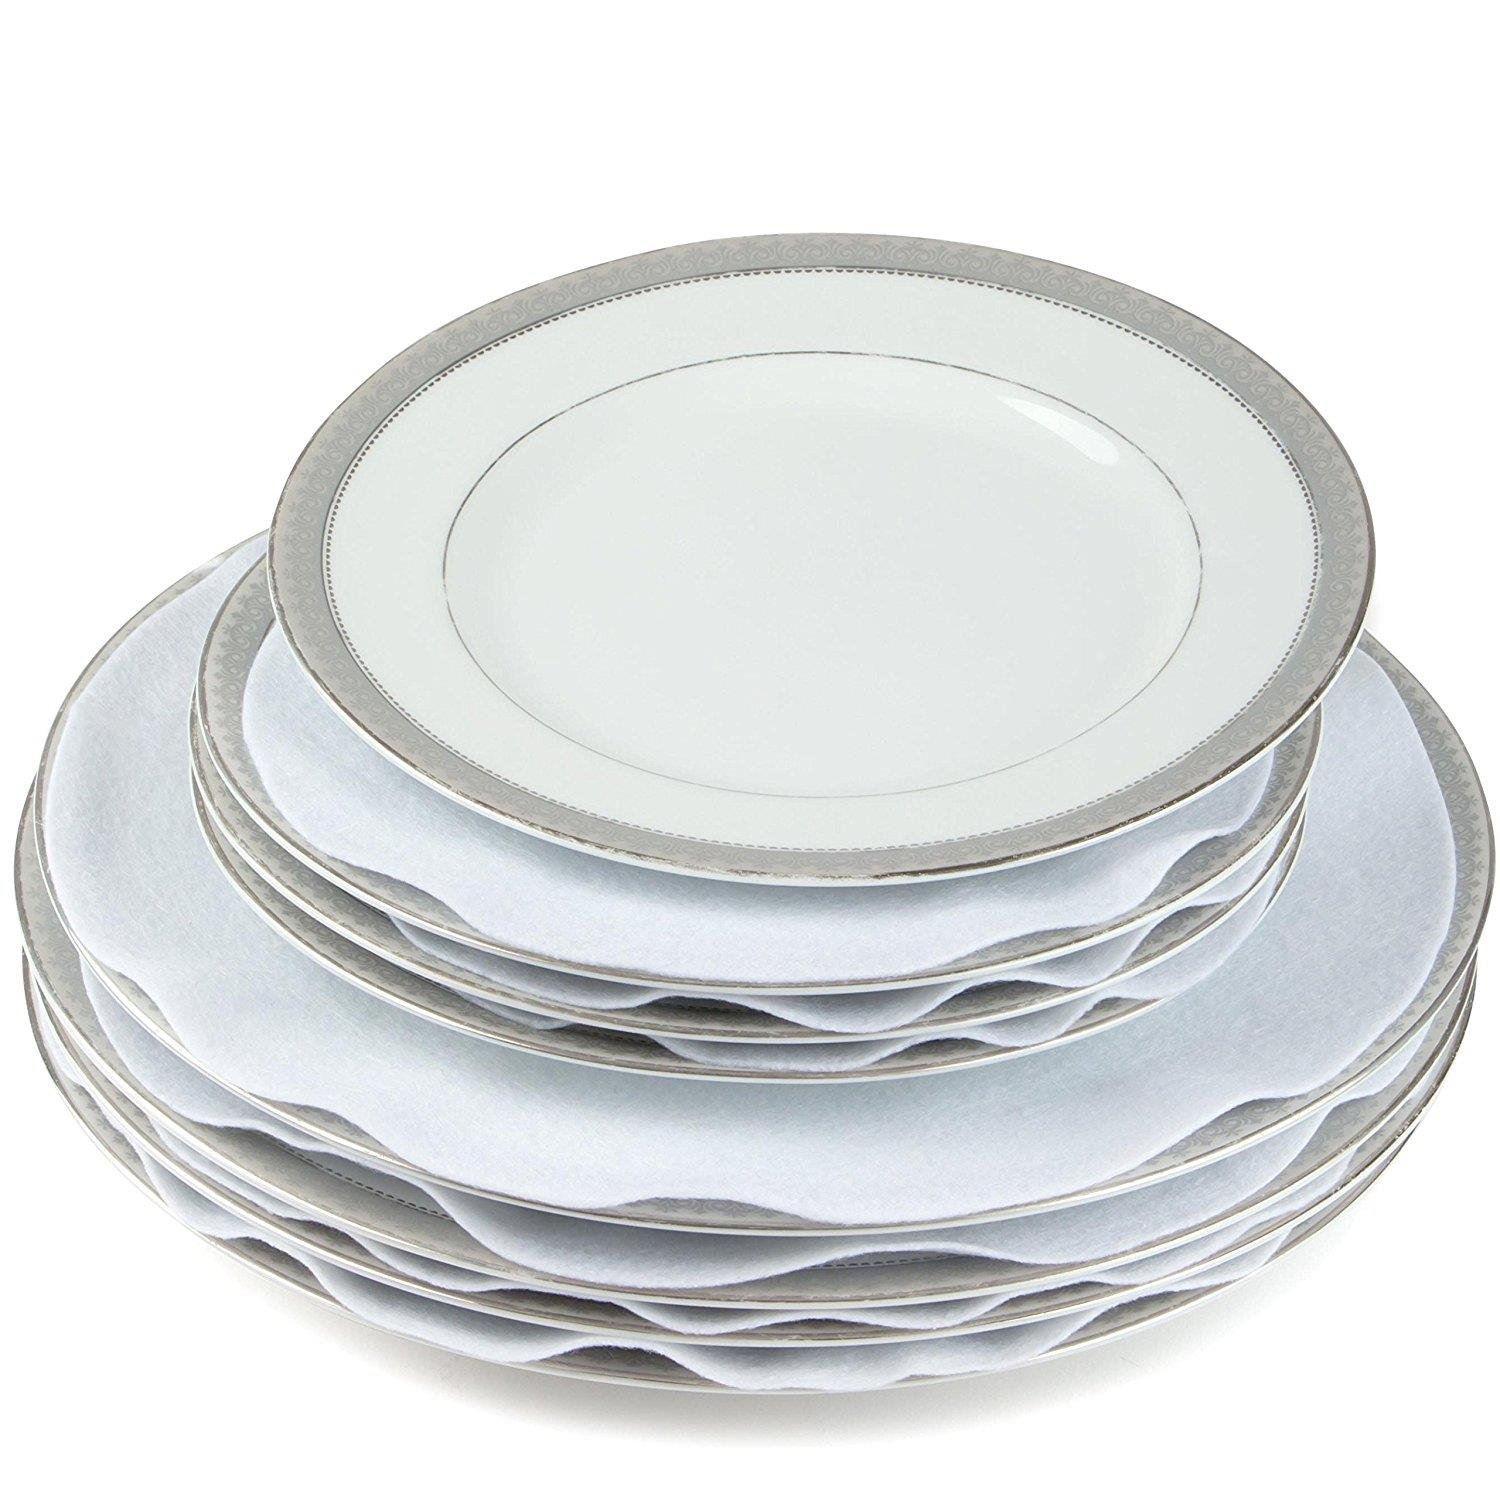 Includes 10 Diameter Dinner Plate Dividers, 12 Set of 48 4.5 Diameter Saucer//Bread /& Butter Plate Dividers 24 6 Diameter Salad//Dessert Plate Dividers, 12 BLACK LAMINET Felt Dividers